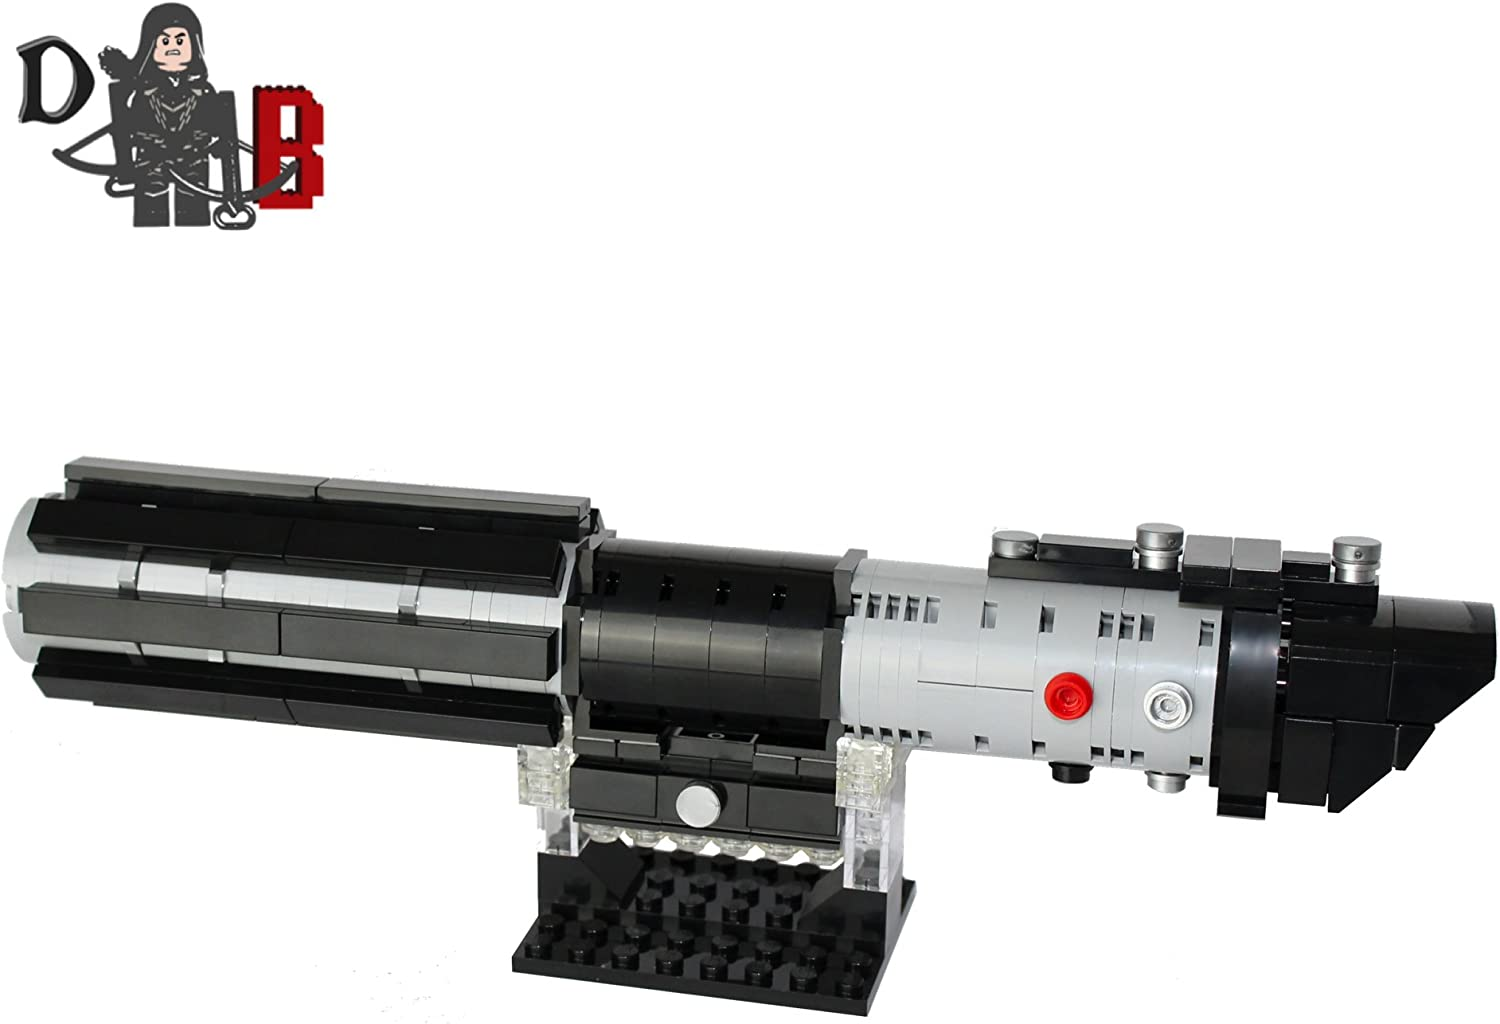 How To Build A Lego Lightsaber